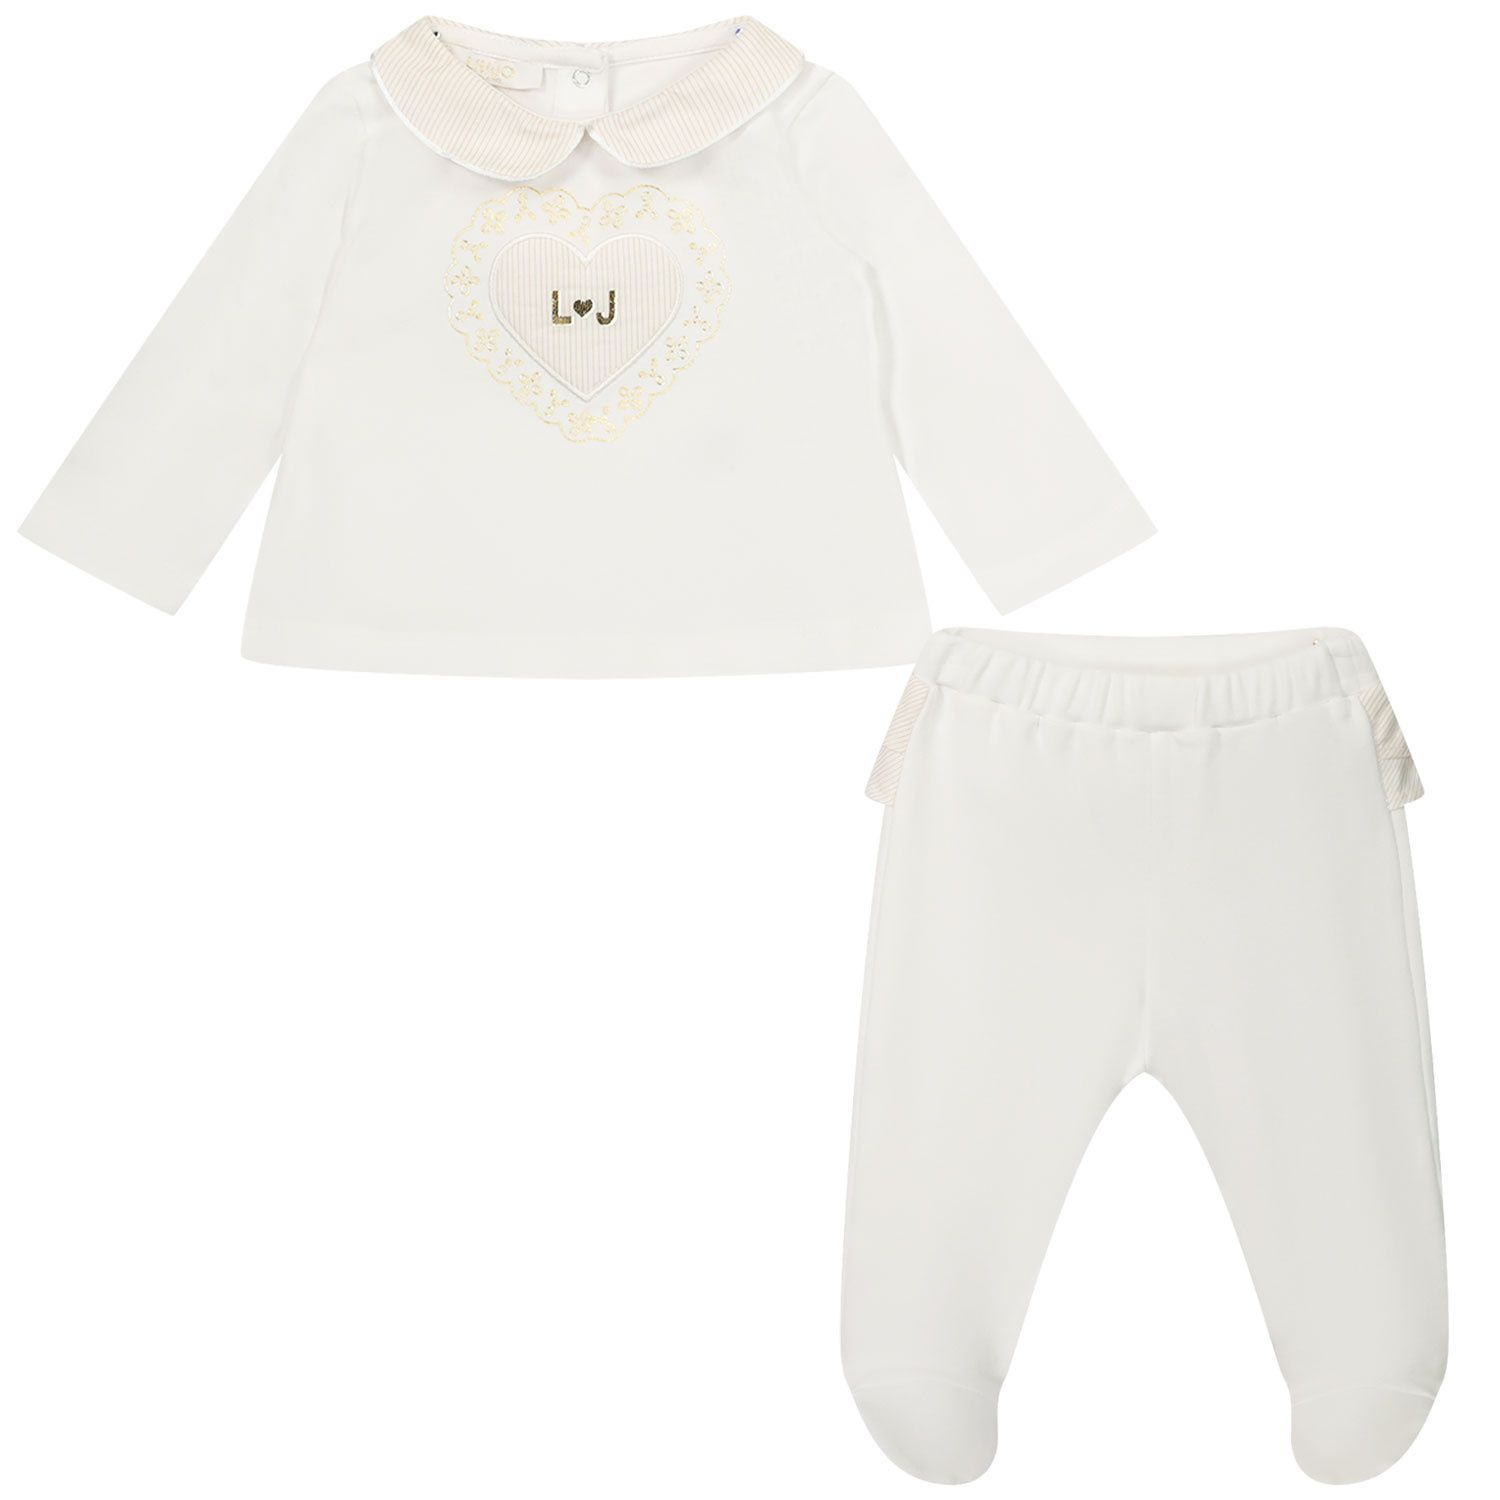 Picture of Liu Jo HA1038 baby playsuit white